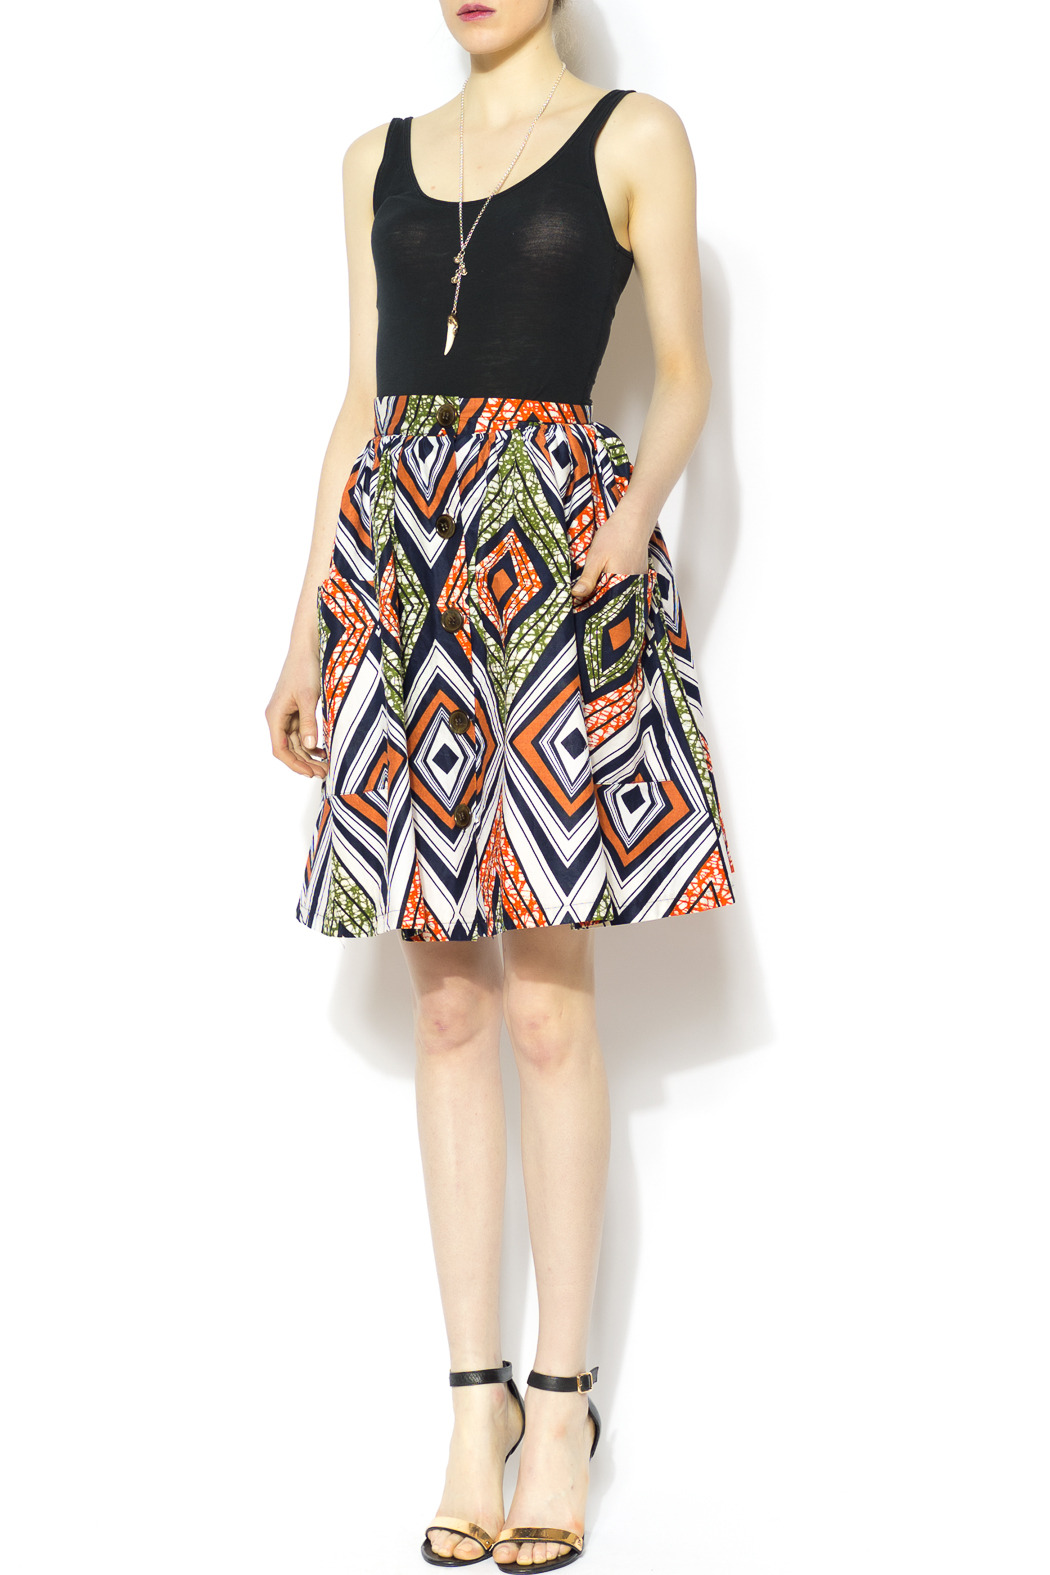 Royal Jelly Harlem Diamond Serafina Skirt - Front Full Image